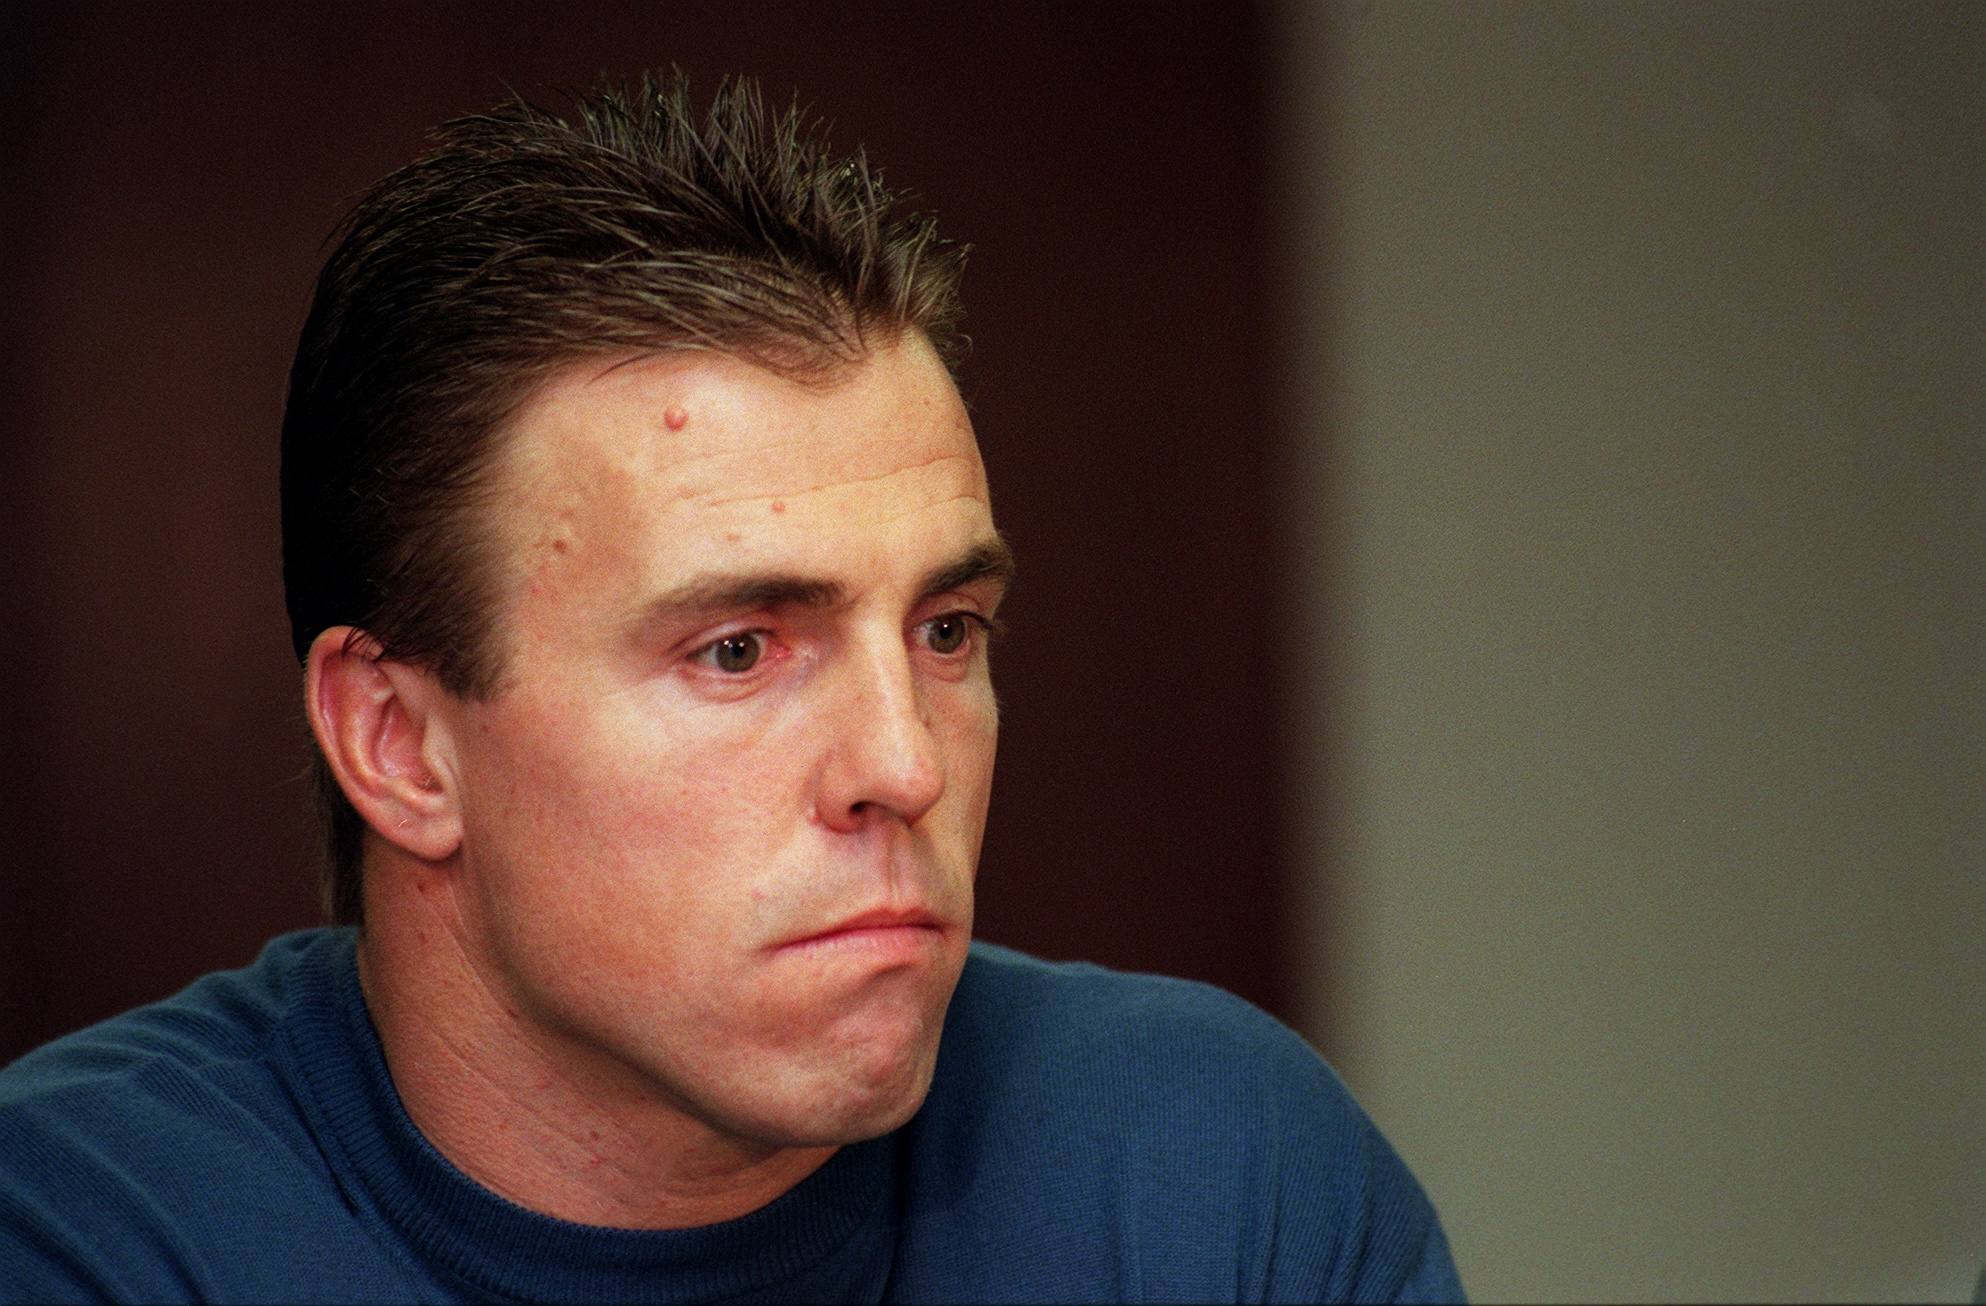 Bill Romanowski listens to his attorney talk to the press during a press confrence about his involement of taking prescription drugs.  (Photo By John Leyba/The Denver Post via Getty Images)